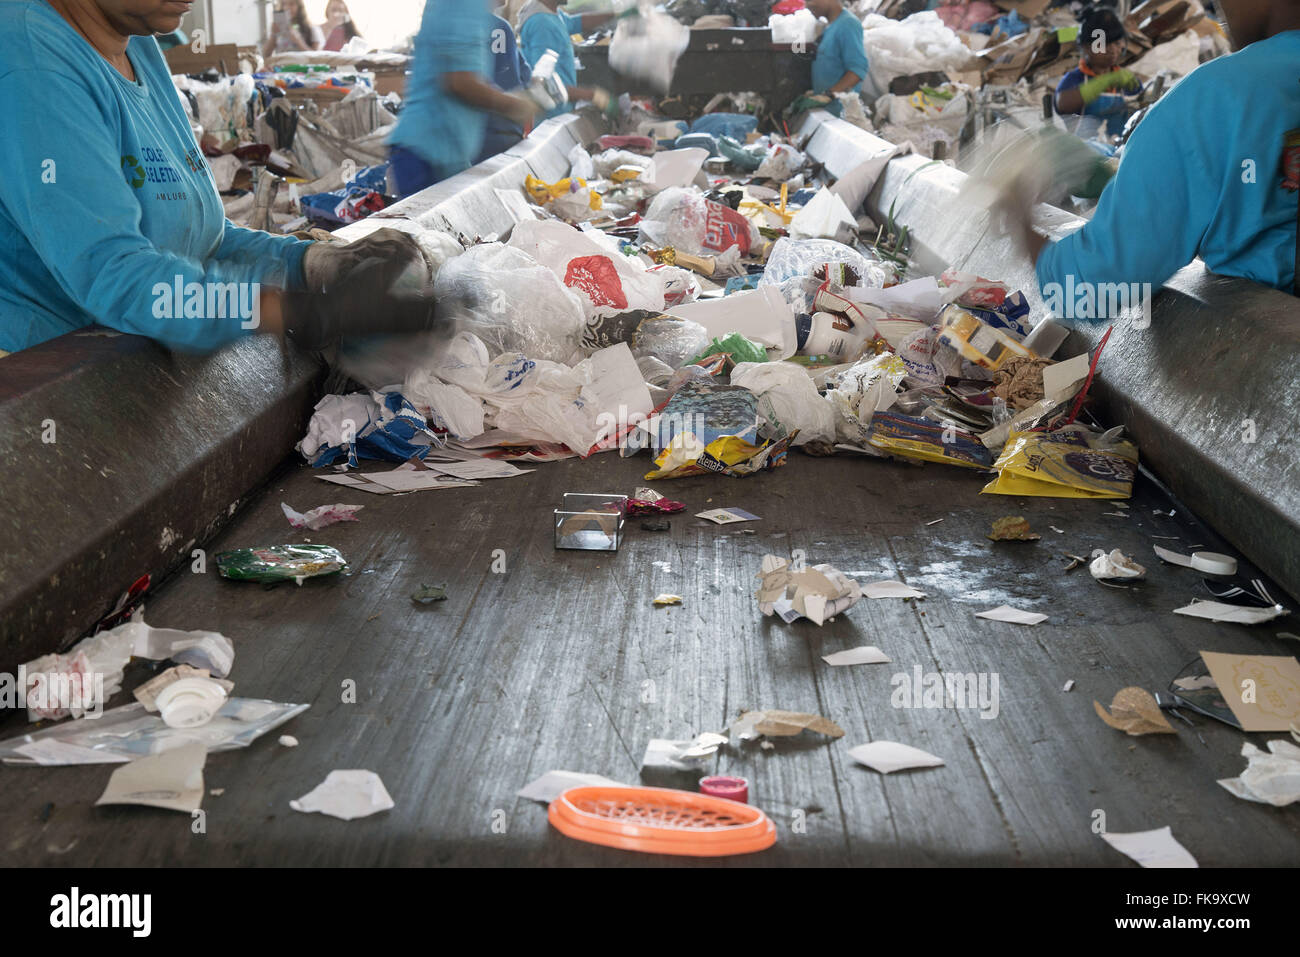 Treadmill for separation of recyclable materials - Stock Image